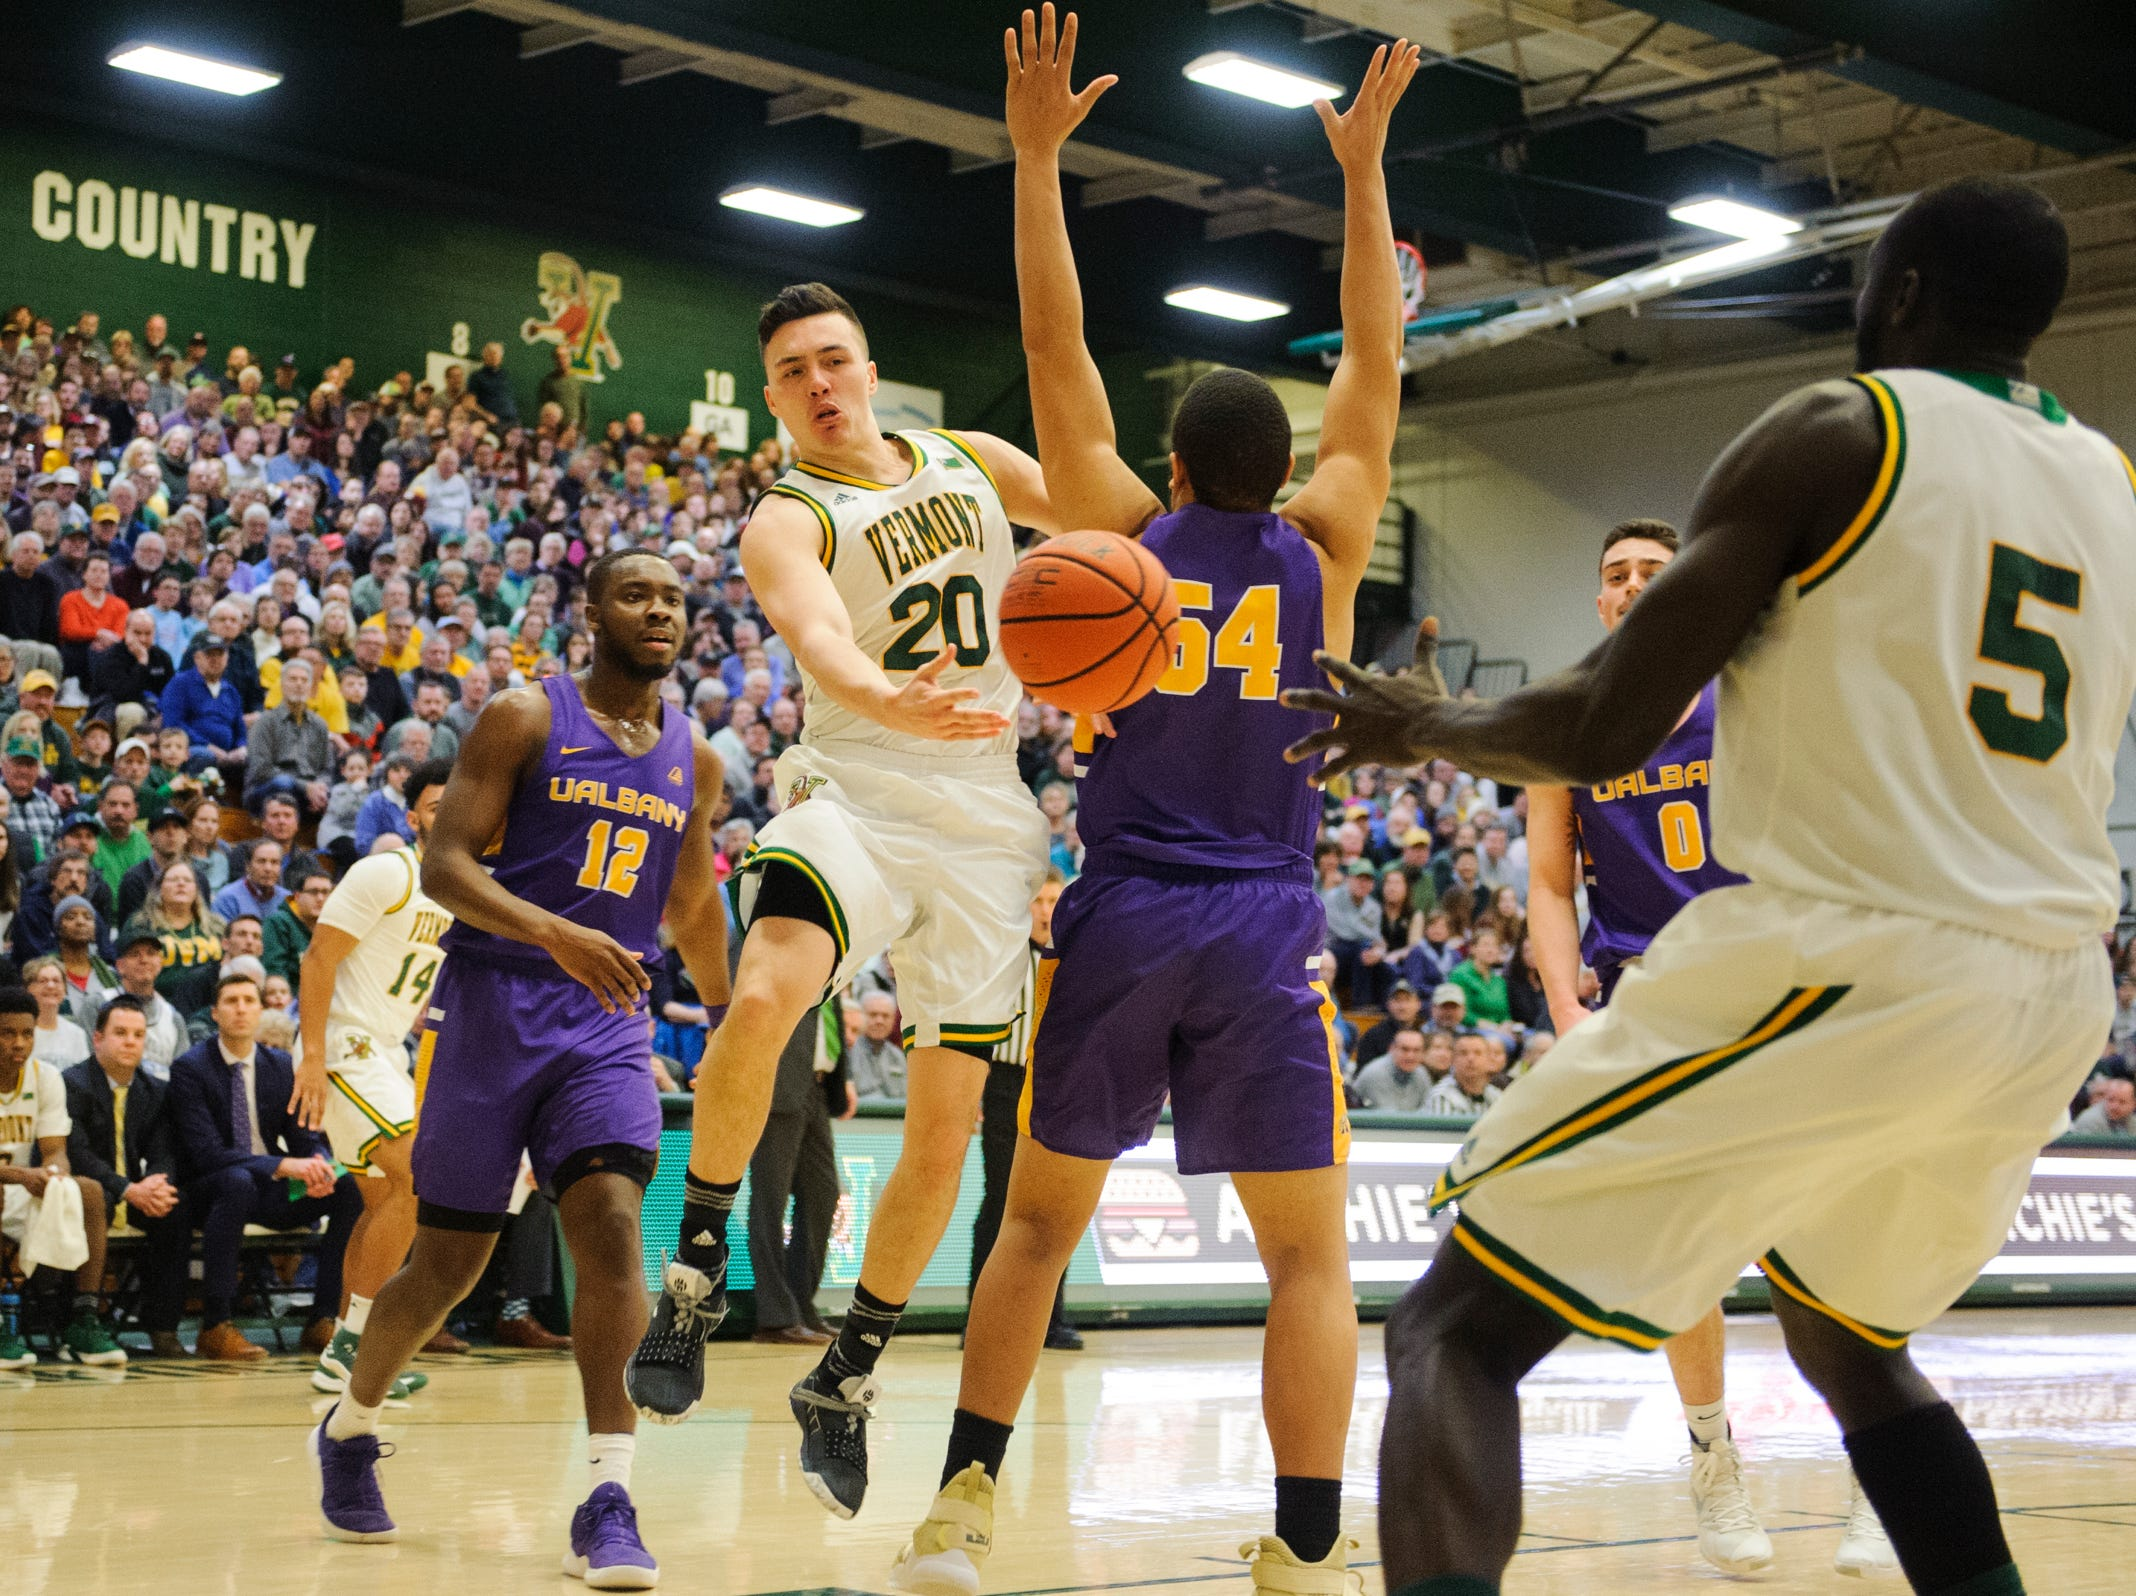 Vermont guard Ernie Duncan (20) passes the ball to Vermont forward Samuel Dingba (5) during the men's basketball game between the Albany Great Danes and the Vermont Catamounts at Patrick Gym on Saturday February 9, 2019 in Burlington, Vermont.